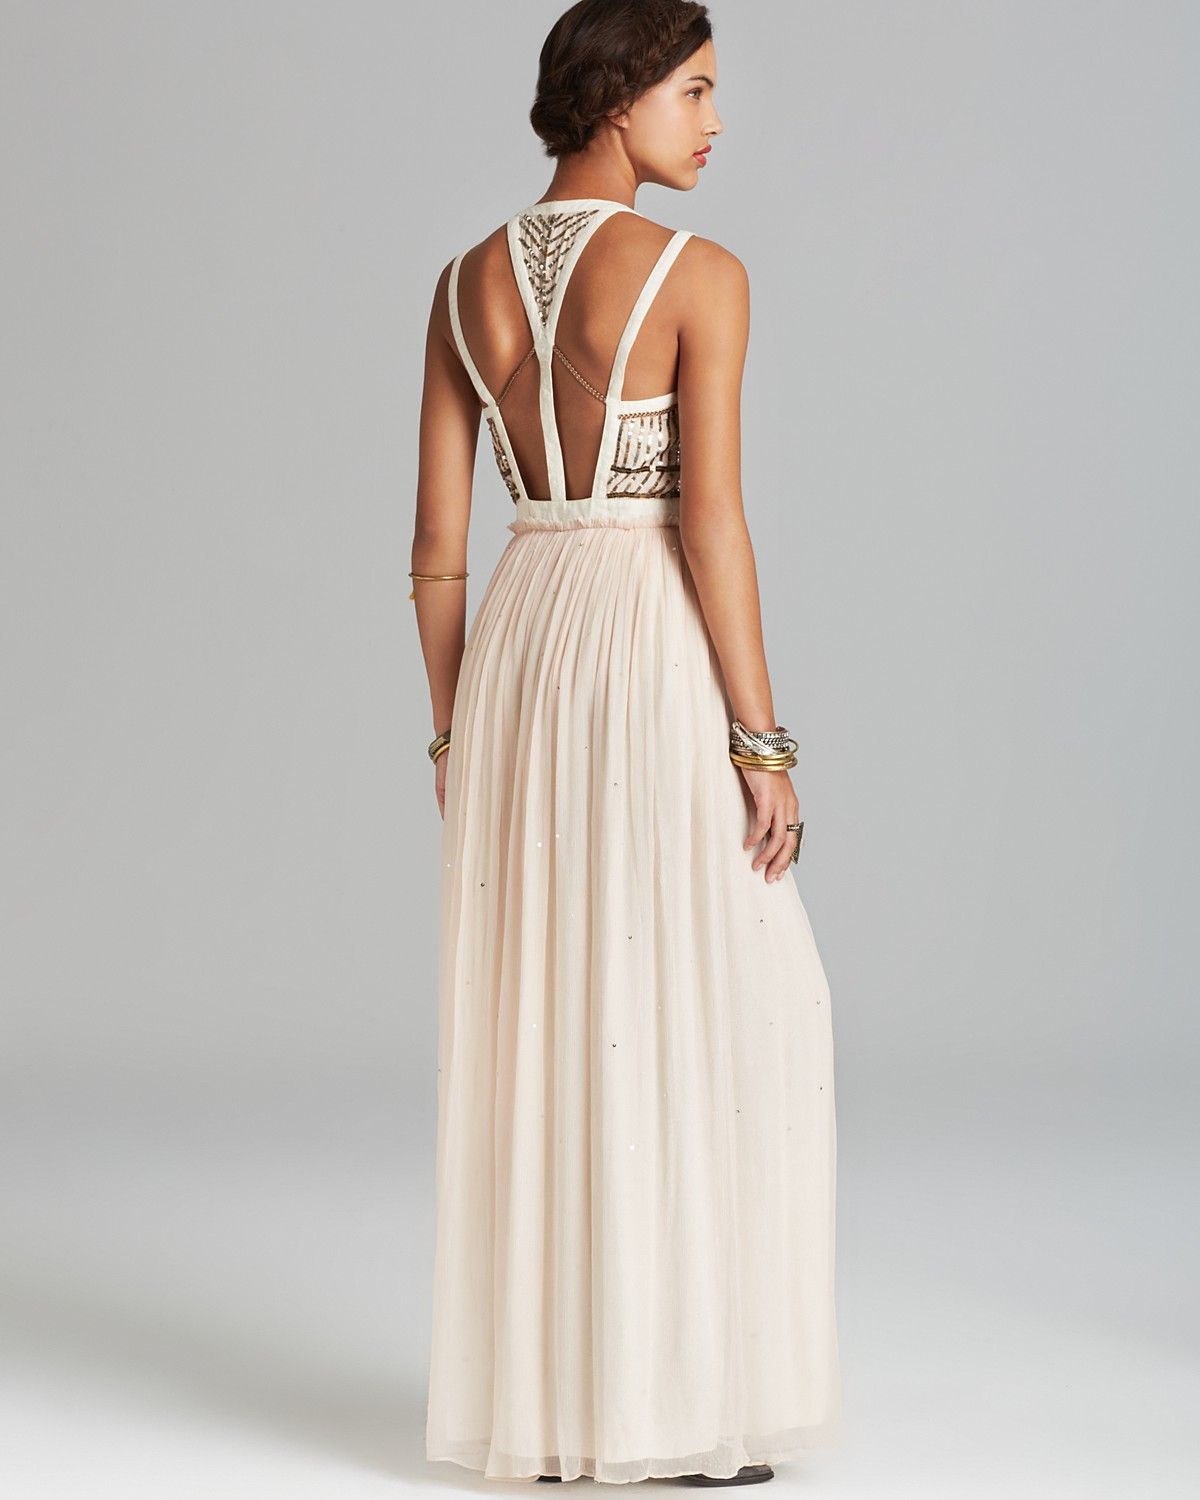 2a69d2b917 Free People Maxi Dress - Golden Chalice